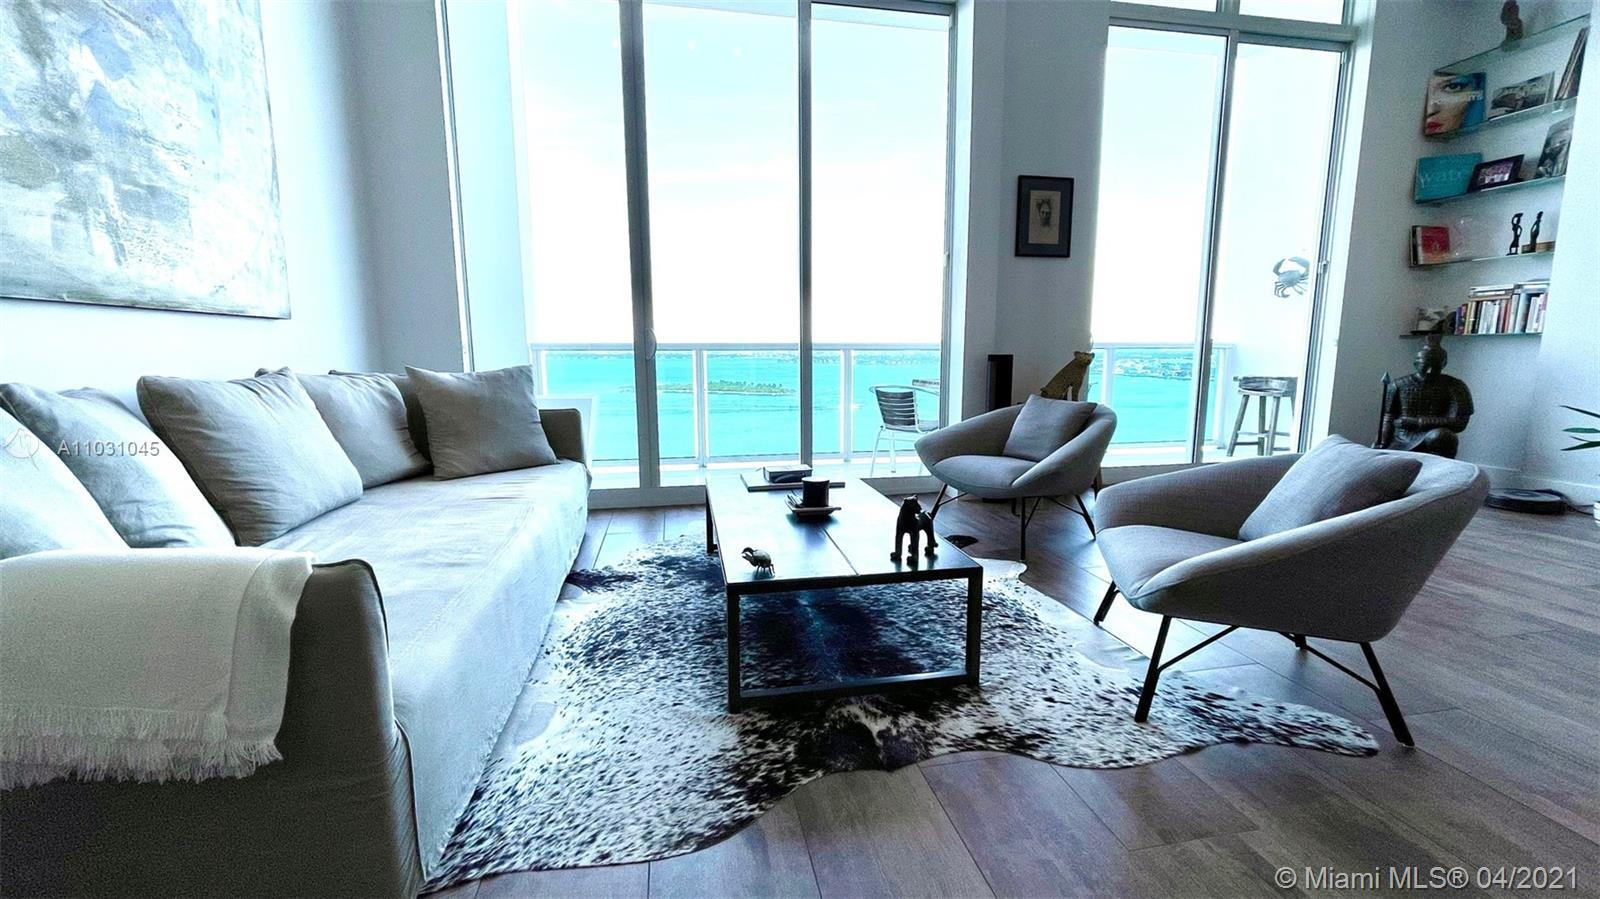 Unique and spectacular loft with unobstructed bay and ocean view. High ceiling (13 feet) and floor t